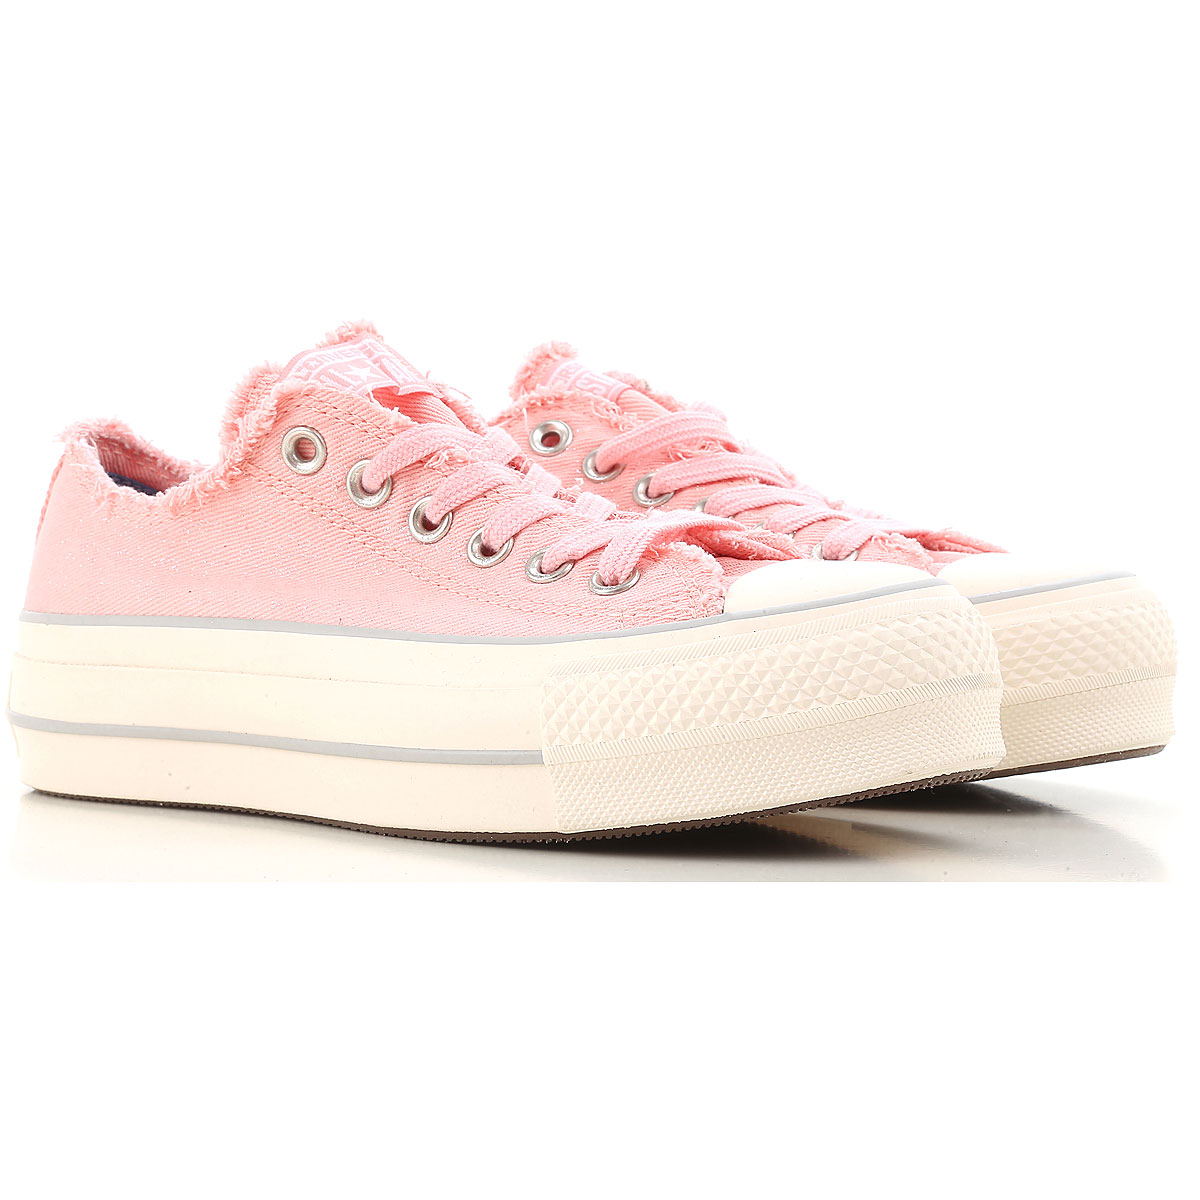 422c0578f5b0 Converse. Shoes for Women